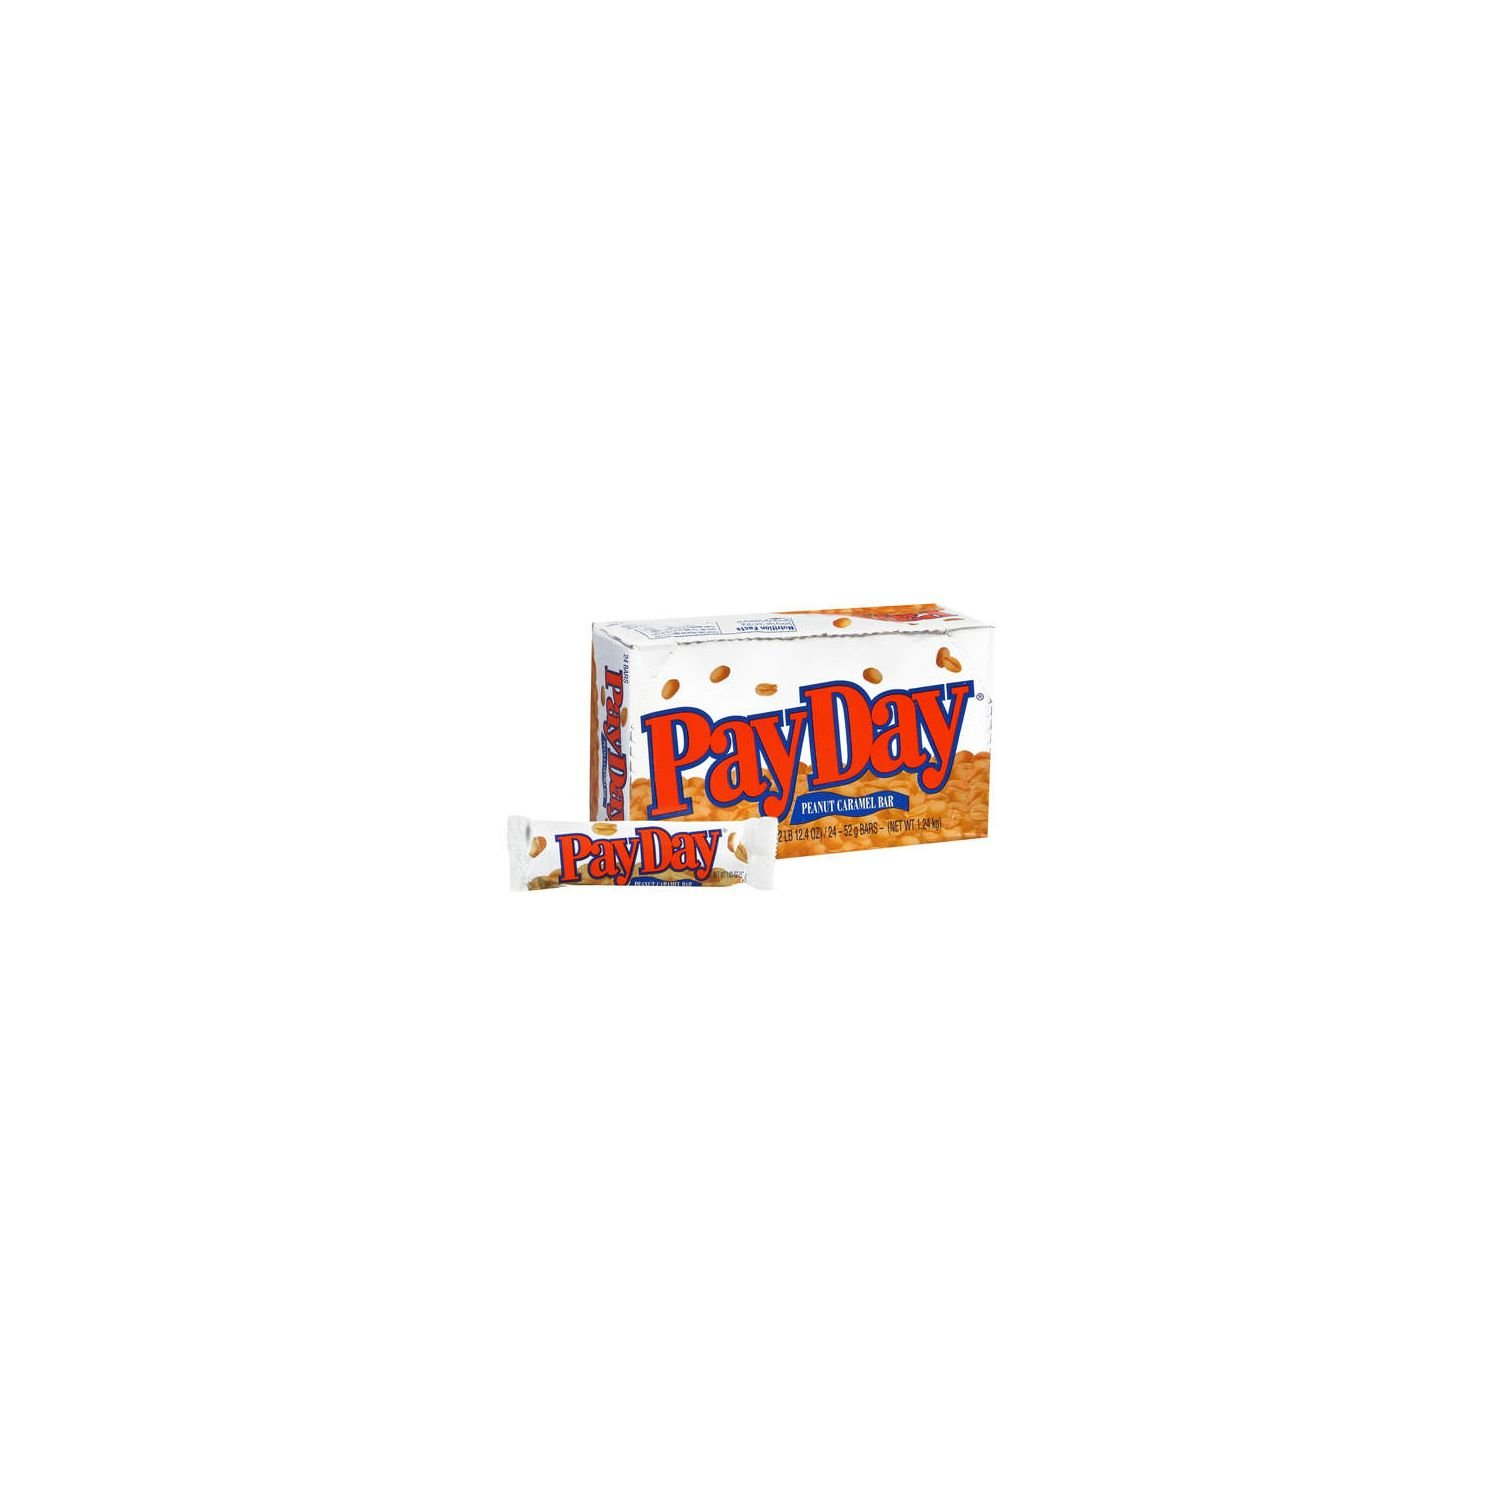 Payday Bars (1.85 oz., 24 ct.) (pack of 2)